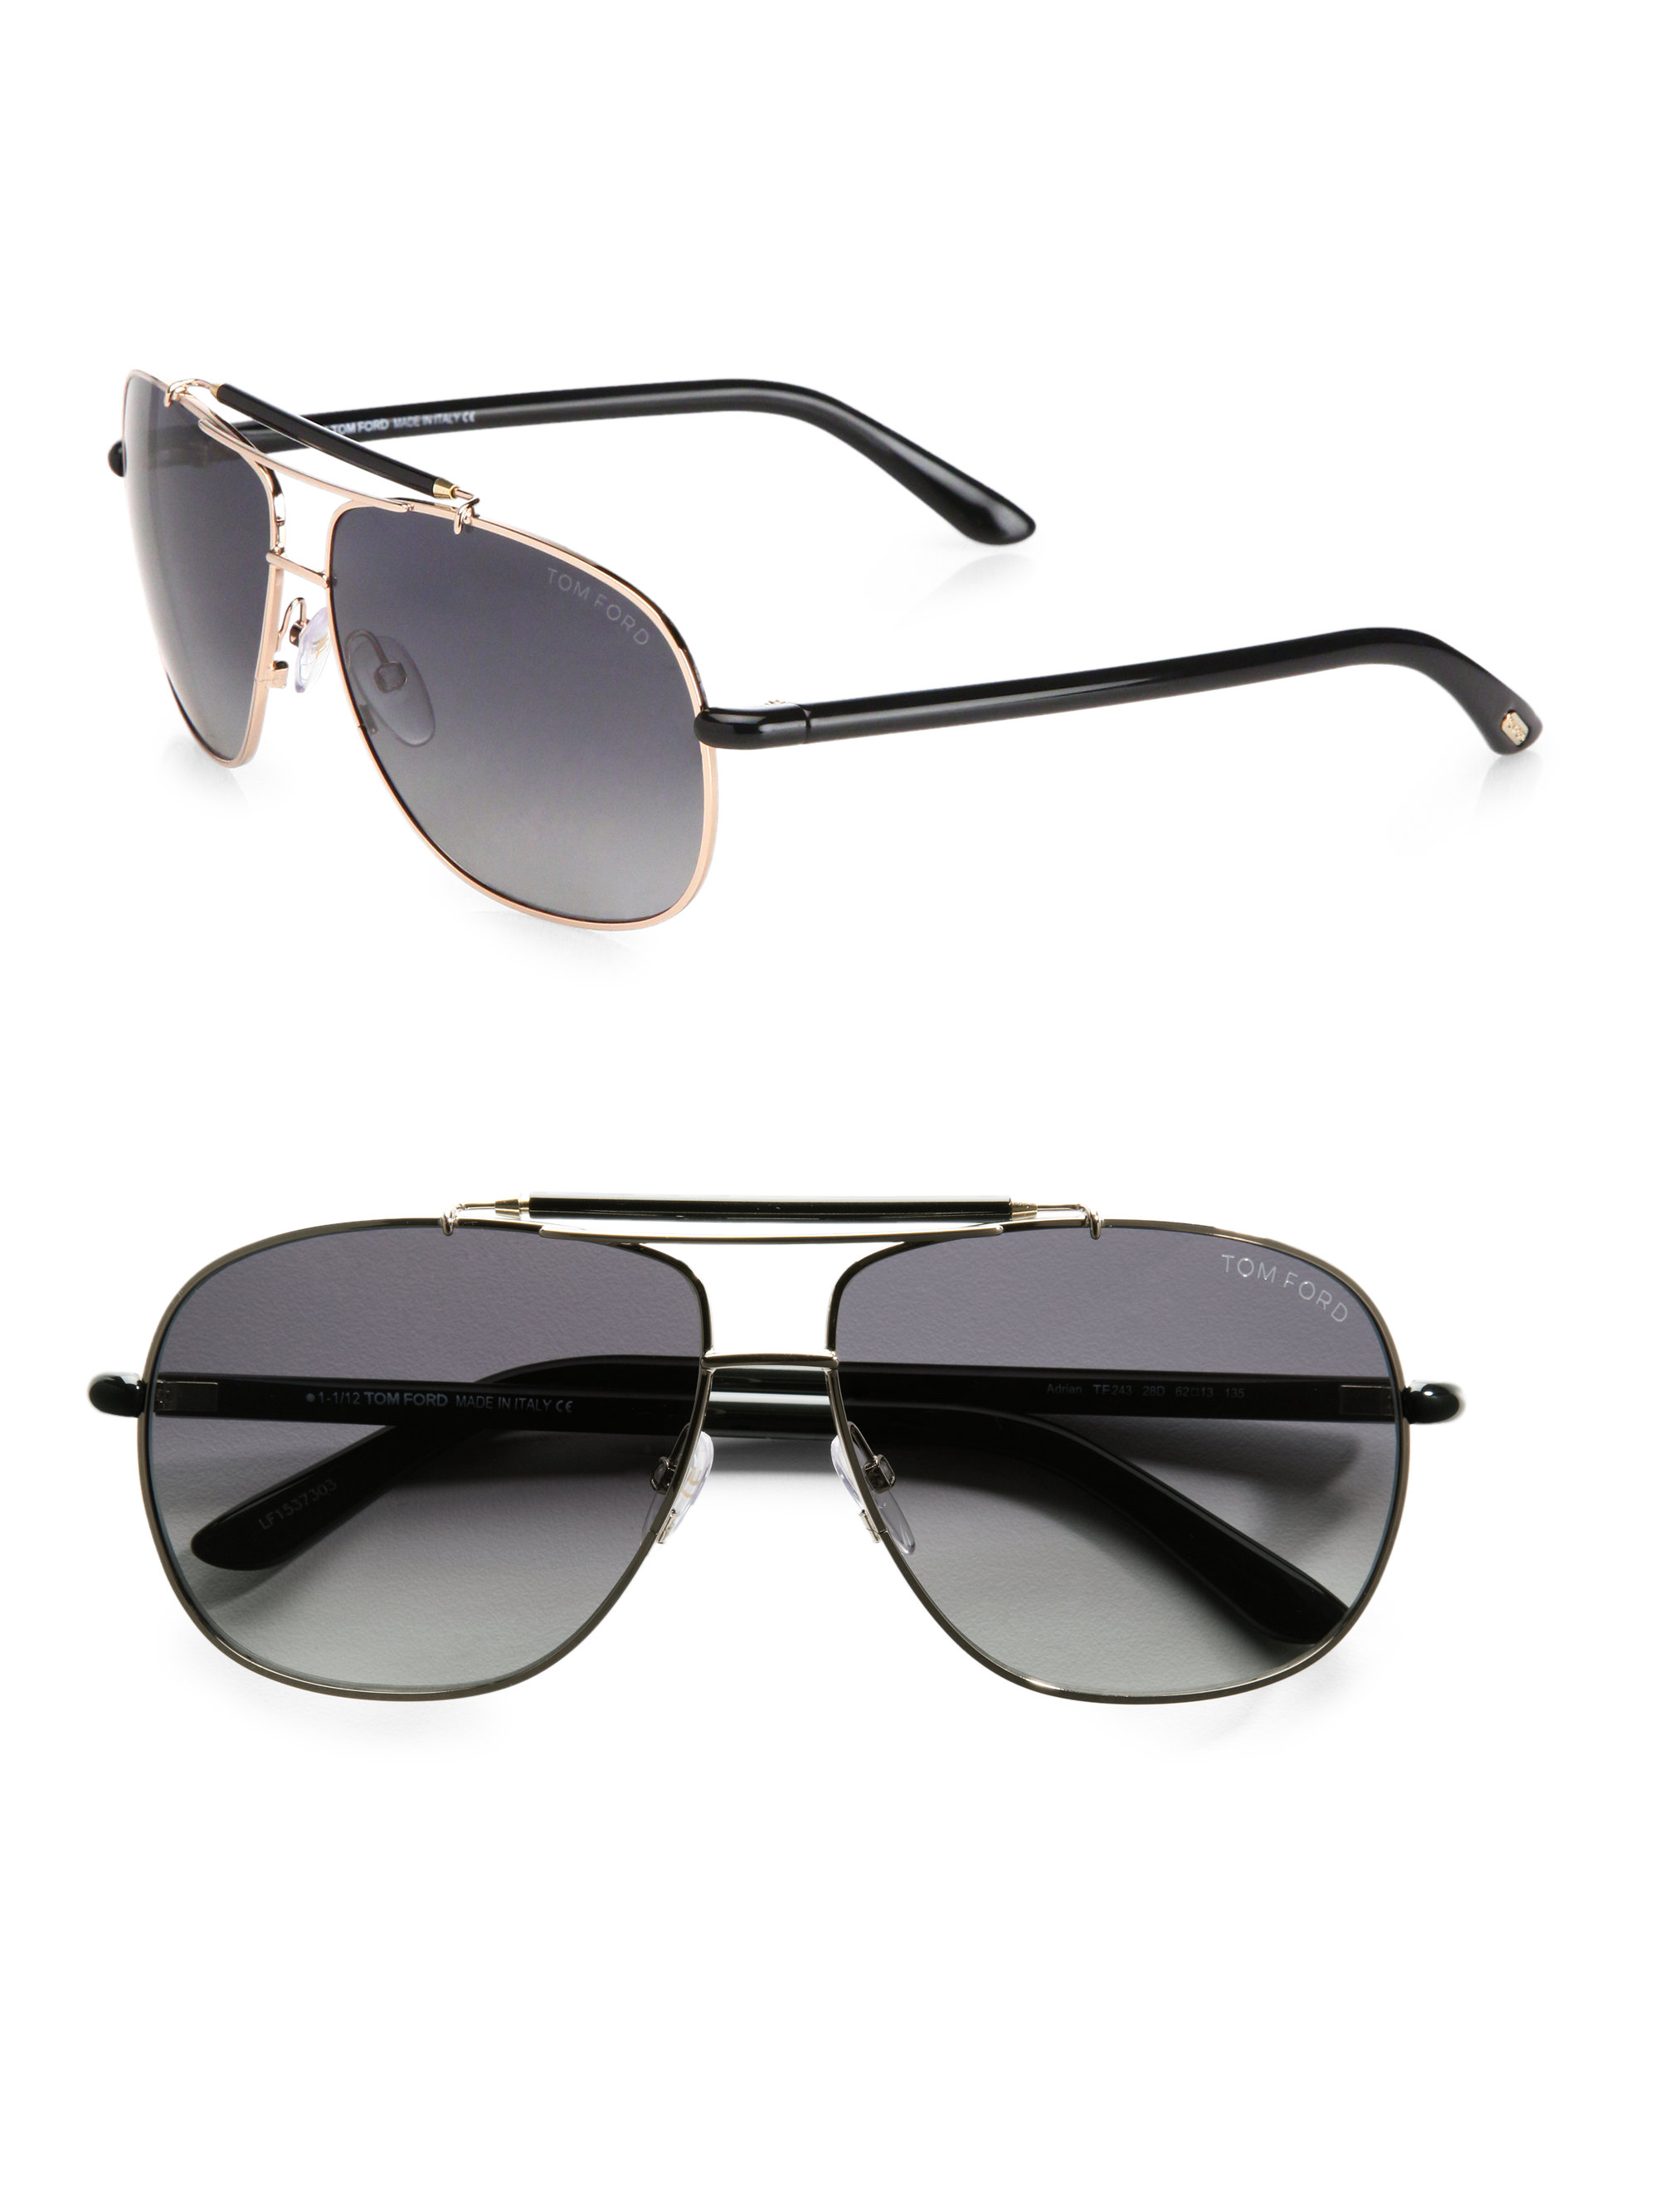 lyst tom ford z metal navigator sunglasses in black for men. Black Bedroom Furniture Sets. Home Design Ideas